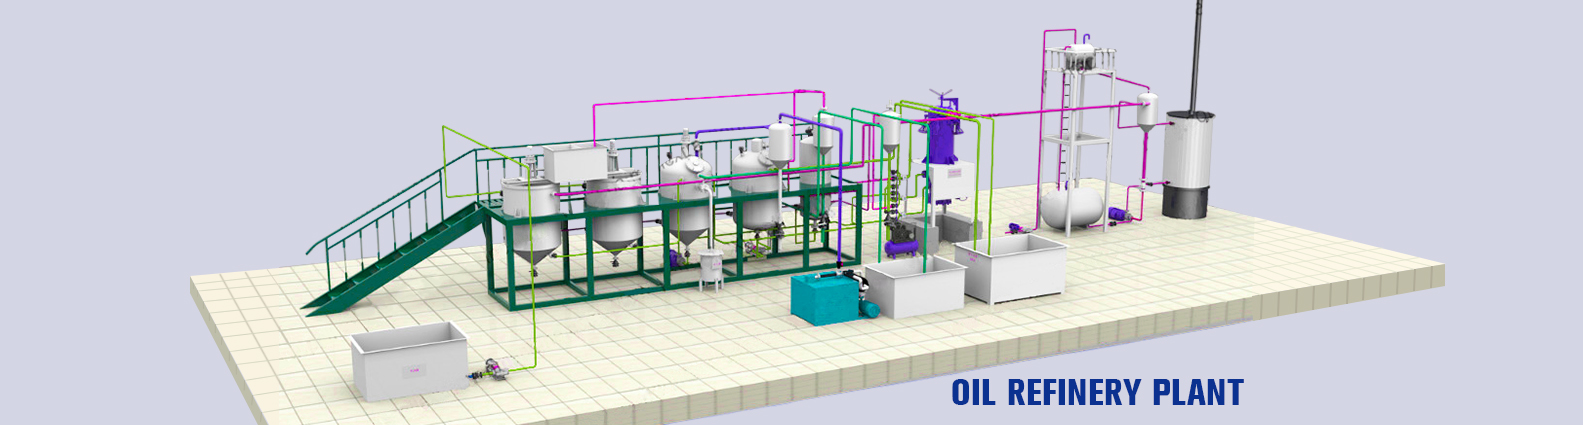 oil press,screw oil press, cold oil press,hydraulic oil press,palm oil mill, oil expeller,oil extraction machine,oil refinery machine